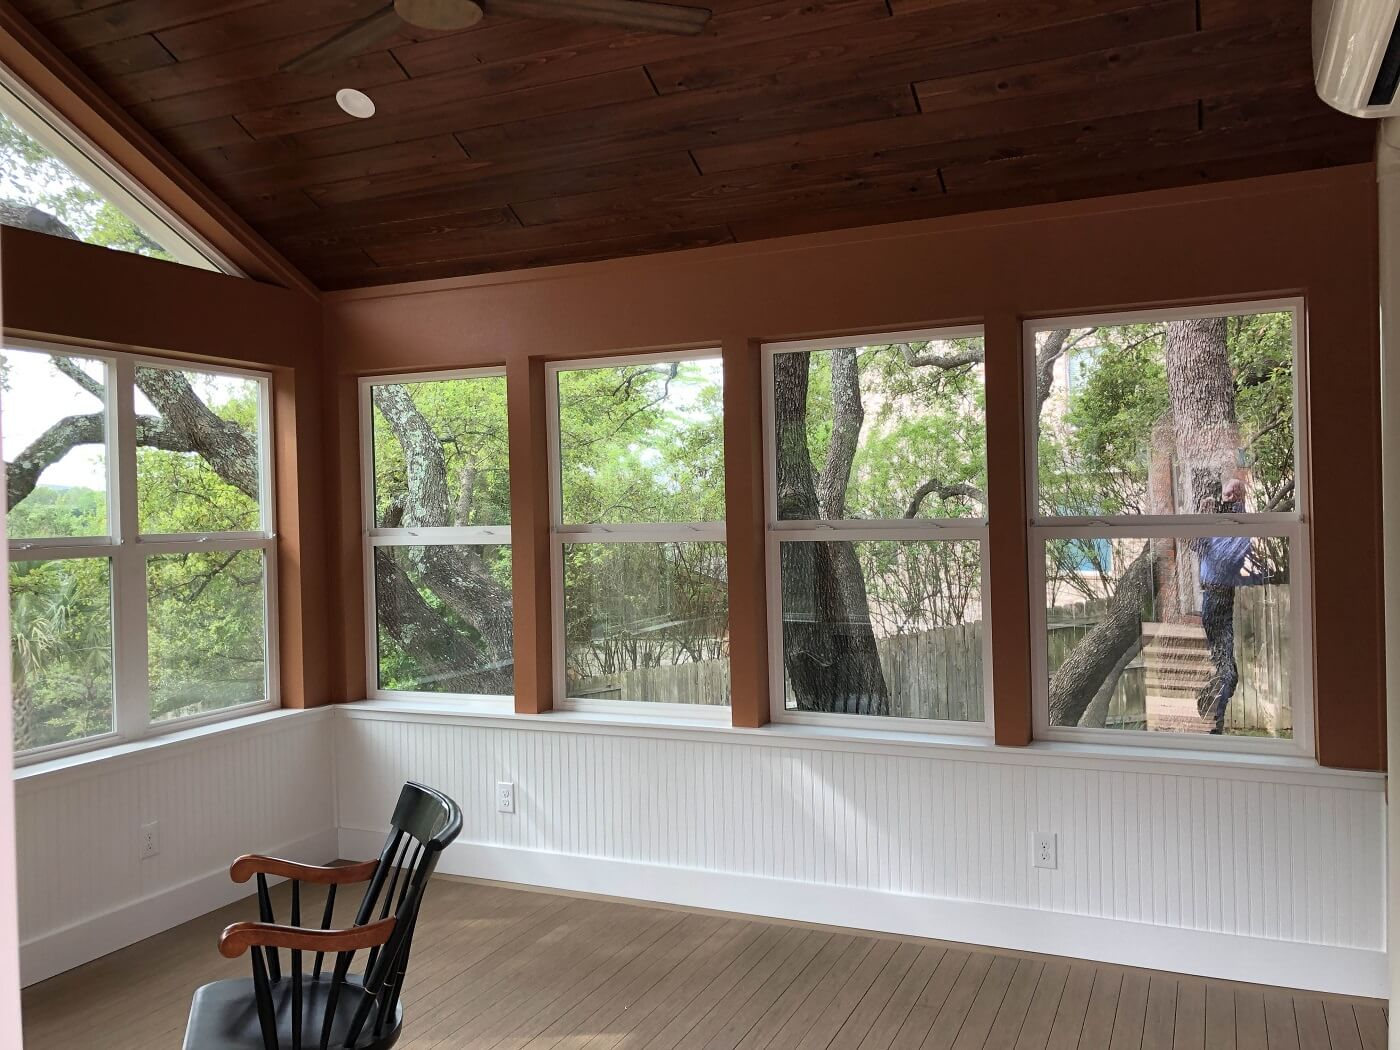 Interior view of sunroom with rocking chair